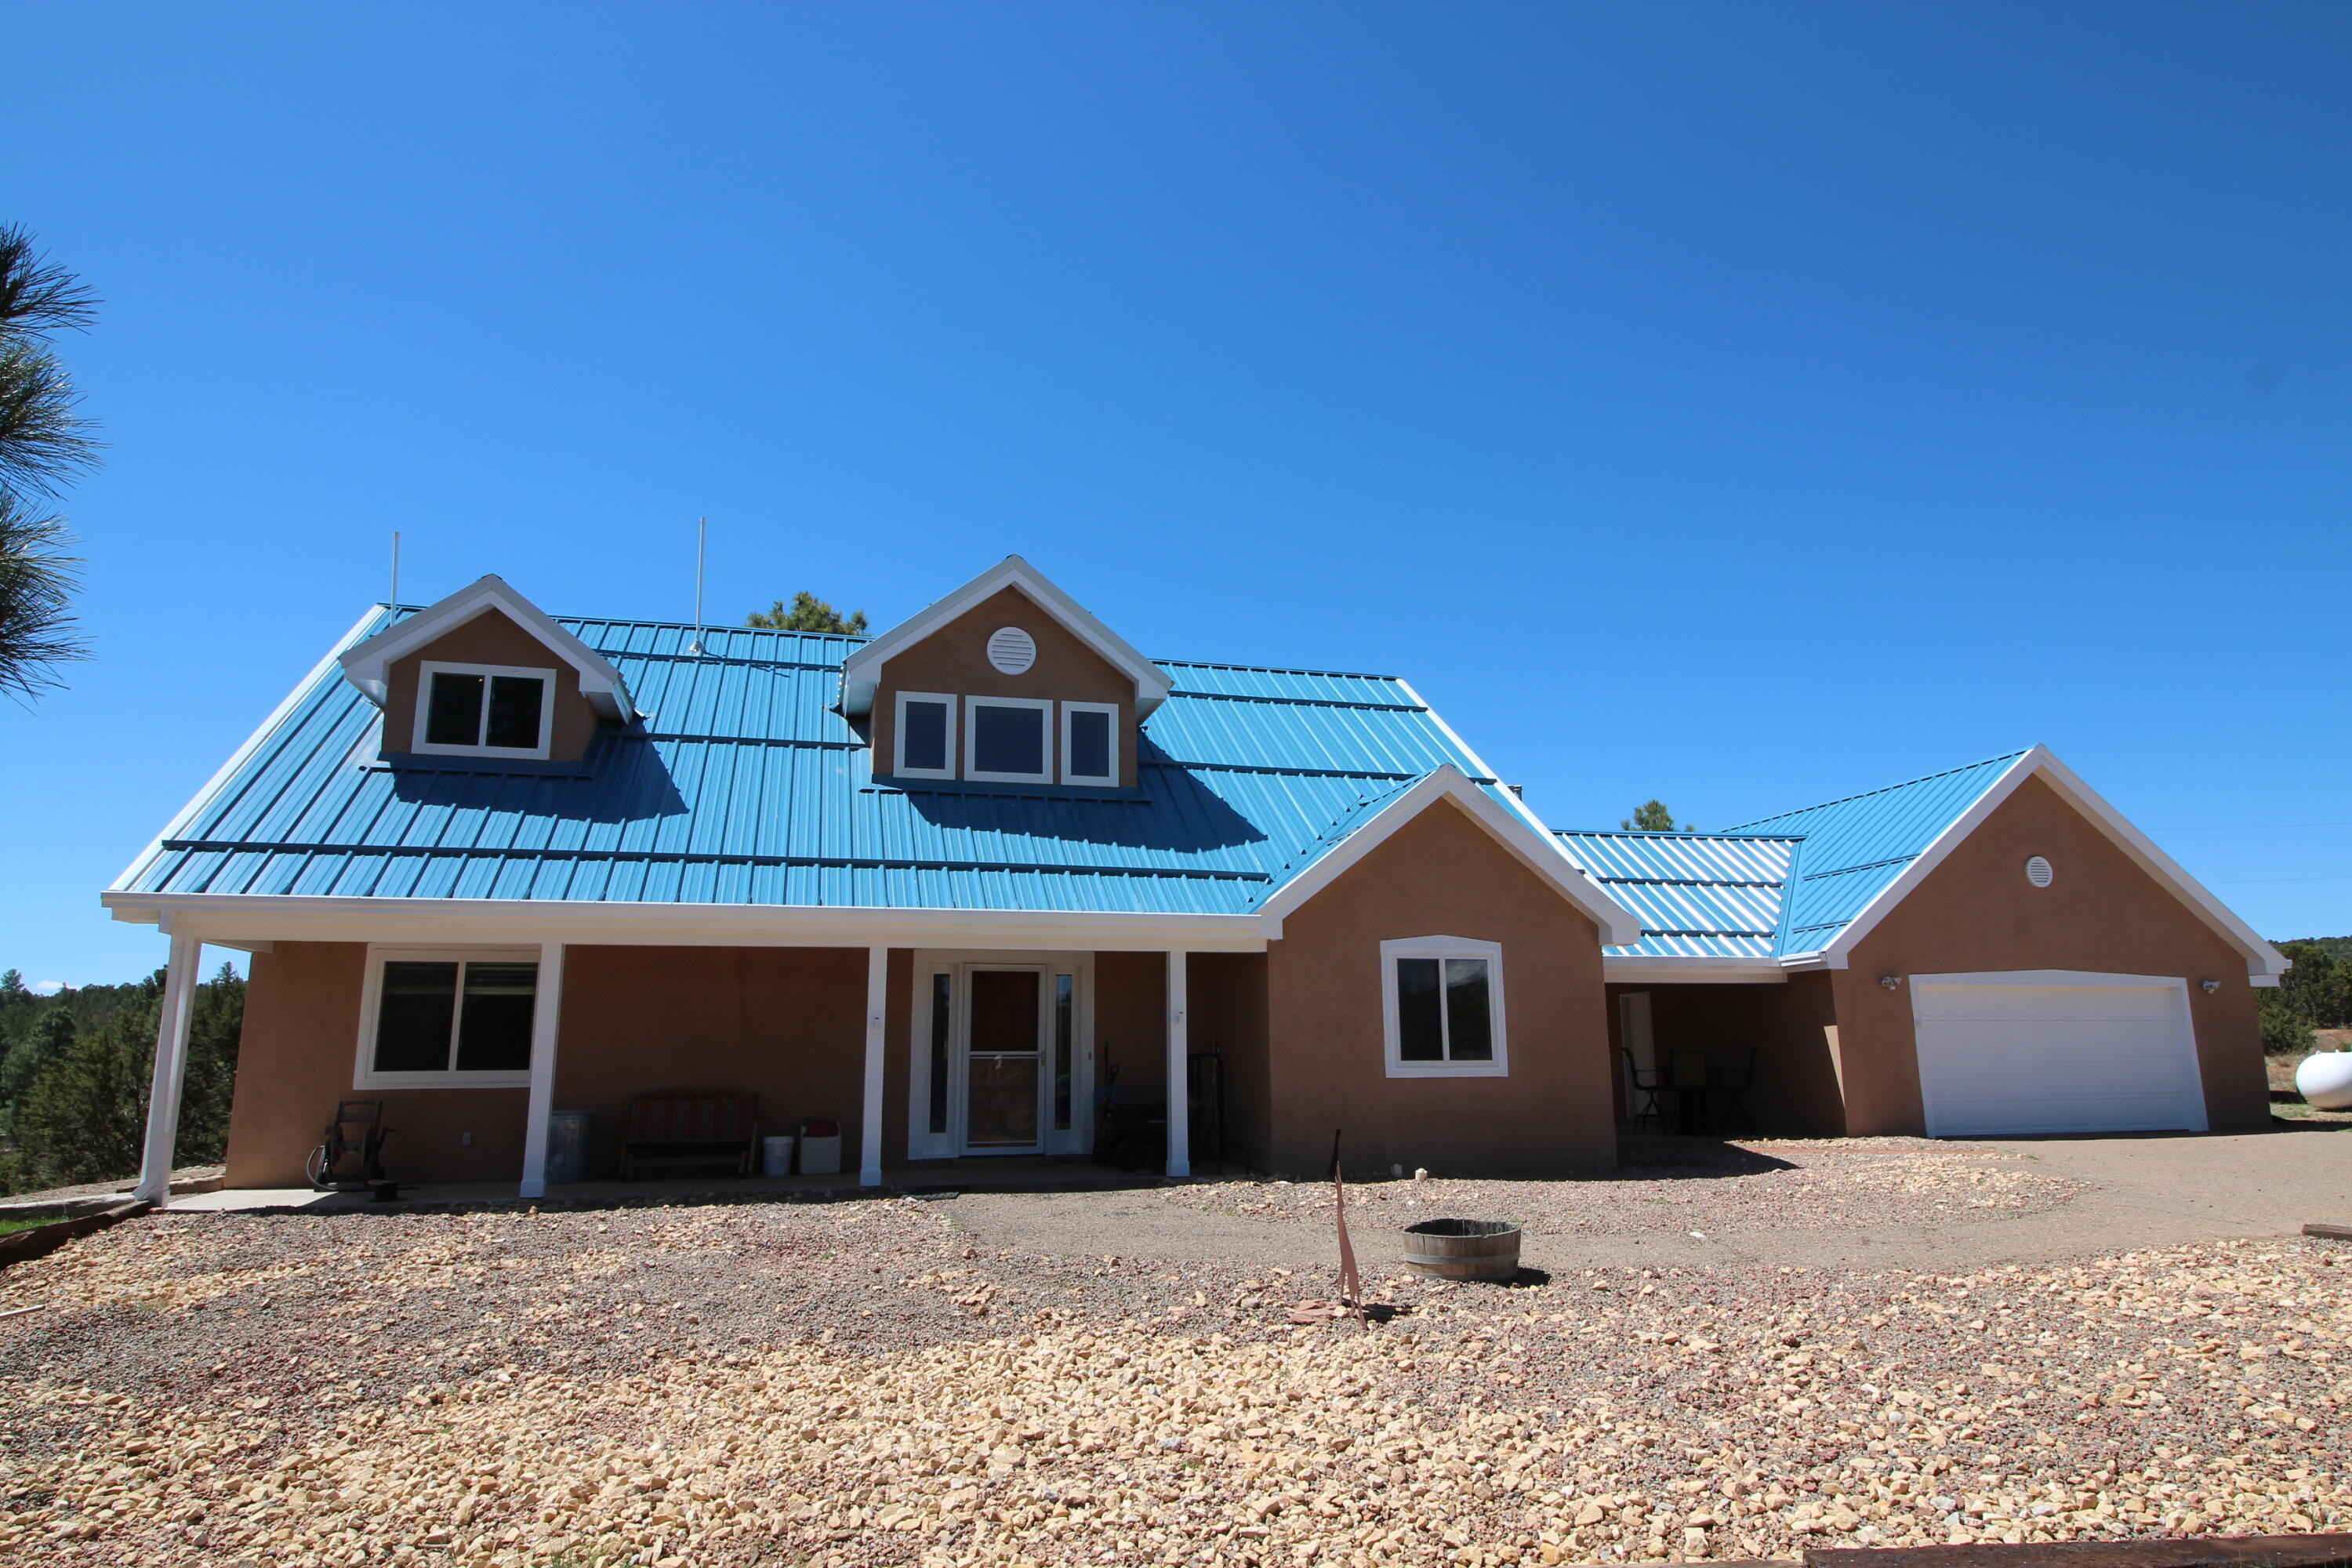 The premier horse property in the East Mountains! 18+ acres of meadow, mature ponderosa pine, views, high producing well, barn, green house, Northern NM custom home, all on a paved drive way! As you pull into this property you are greeted by the peaceful and quiet natural setting of this home. Walk into this updated home with a private master suite with a personal deck to walk out on. Master suite has custom barn doors and a custom shower set up. Downstairs boasts 2 bedrooms, an office, gourmet IKEA kitchen, a grand living room, and a heated converted sunroom with a hot tub and open access to the backyard.  There is a custom green house on the property too! The barn has 3 run outs, 2 concrete tack rooms, and a finished game room! Fully fenced and fenced pasture for any animal you may want.